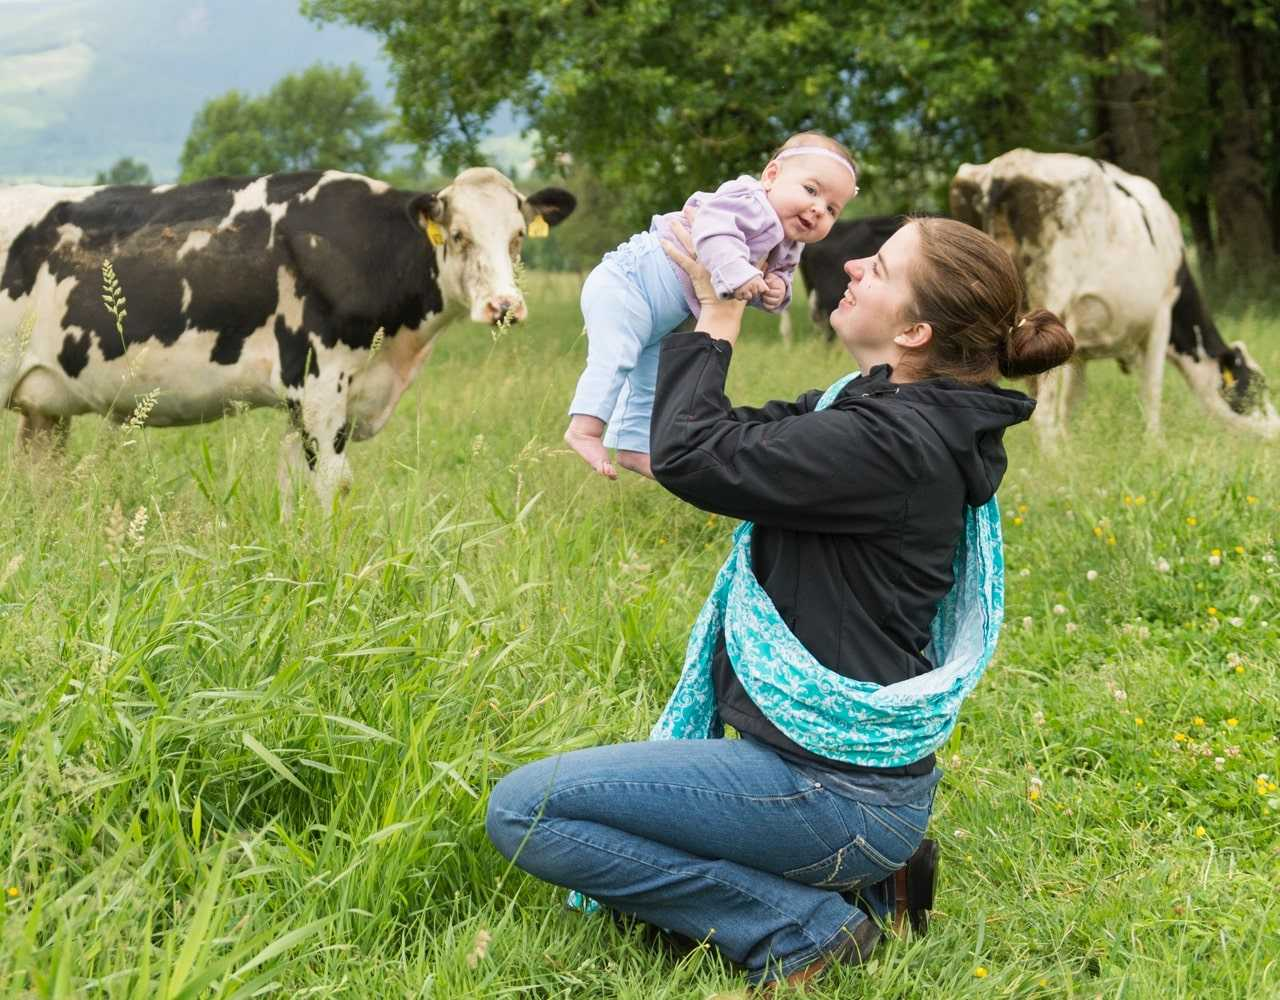 A young mother lovingly holding her baby in a pasture as cows graze in the background.